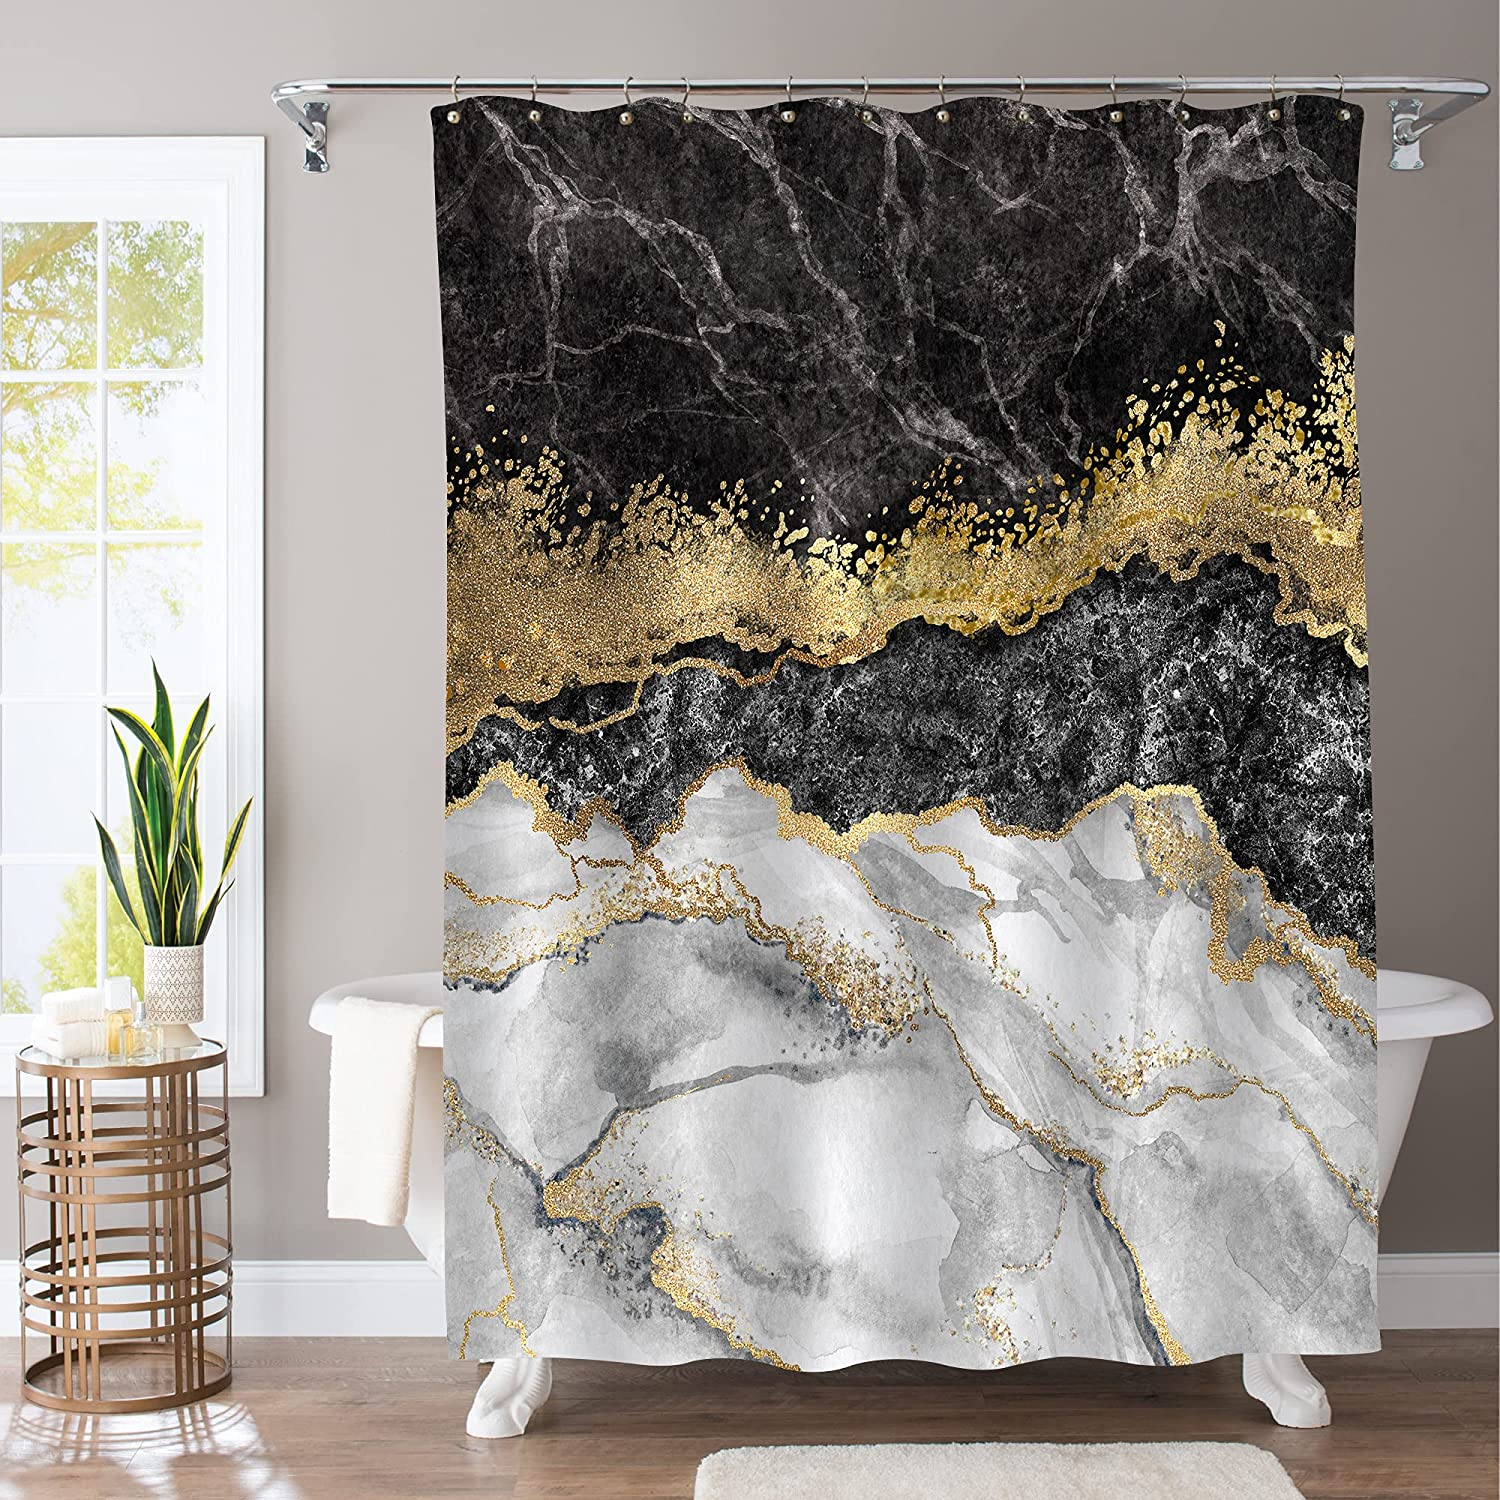 MitoVilla Black Grey Marble Shower Curtain for Bathroom, Abstract Gray Black and White Marble with Gold Crack Bathroom Curtain for Modern Bathroom Decor, Stone Shower Curtain Sets with Hooks, 72 x 72